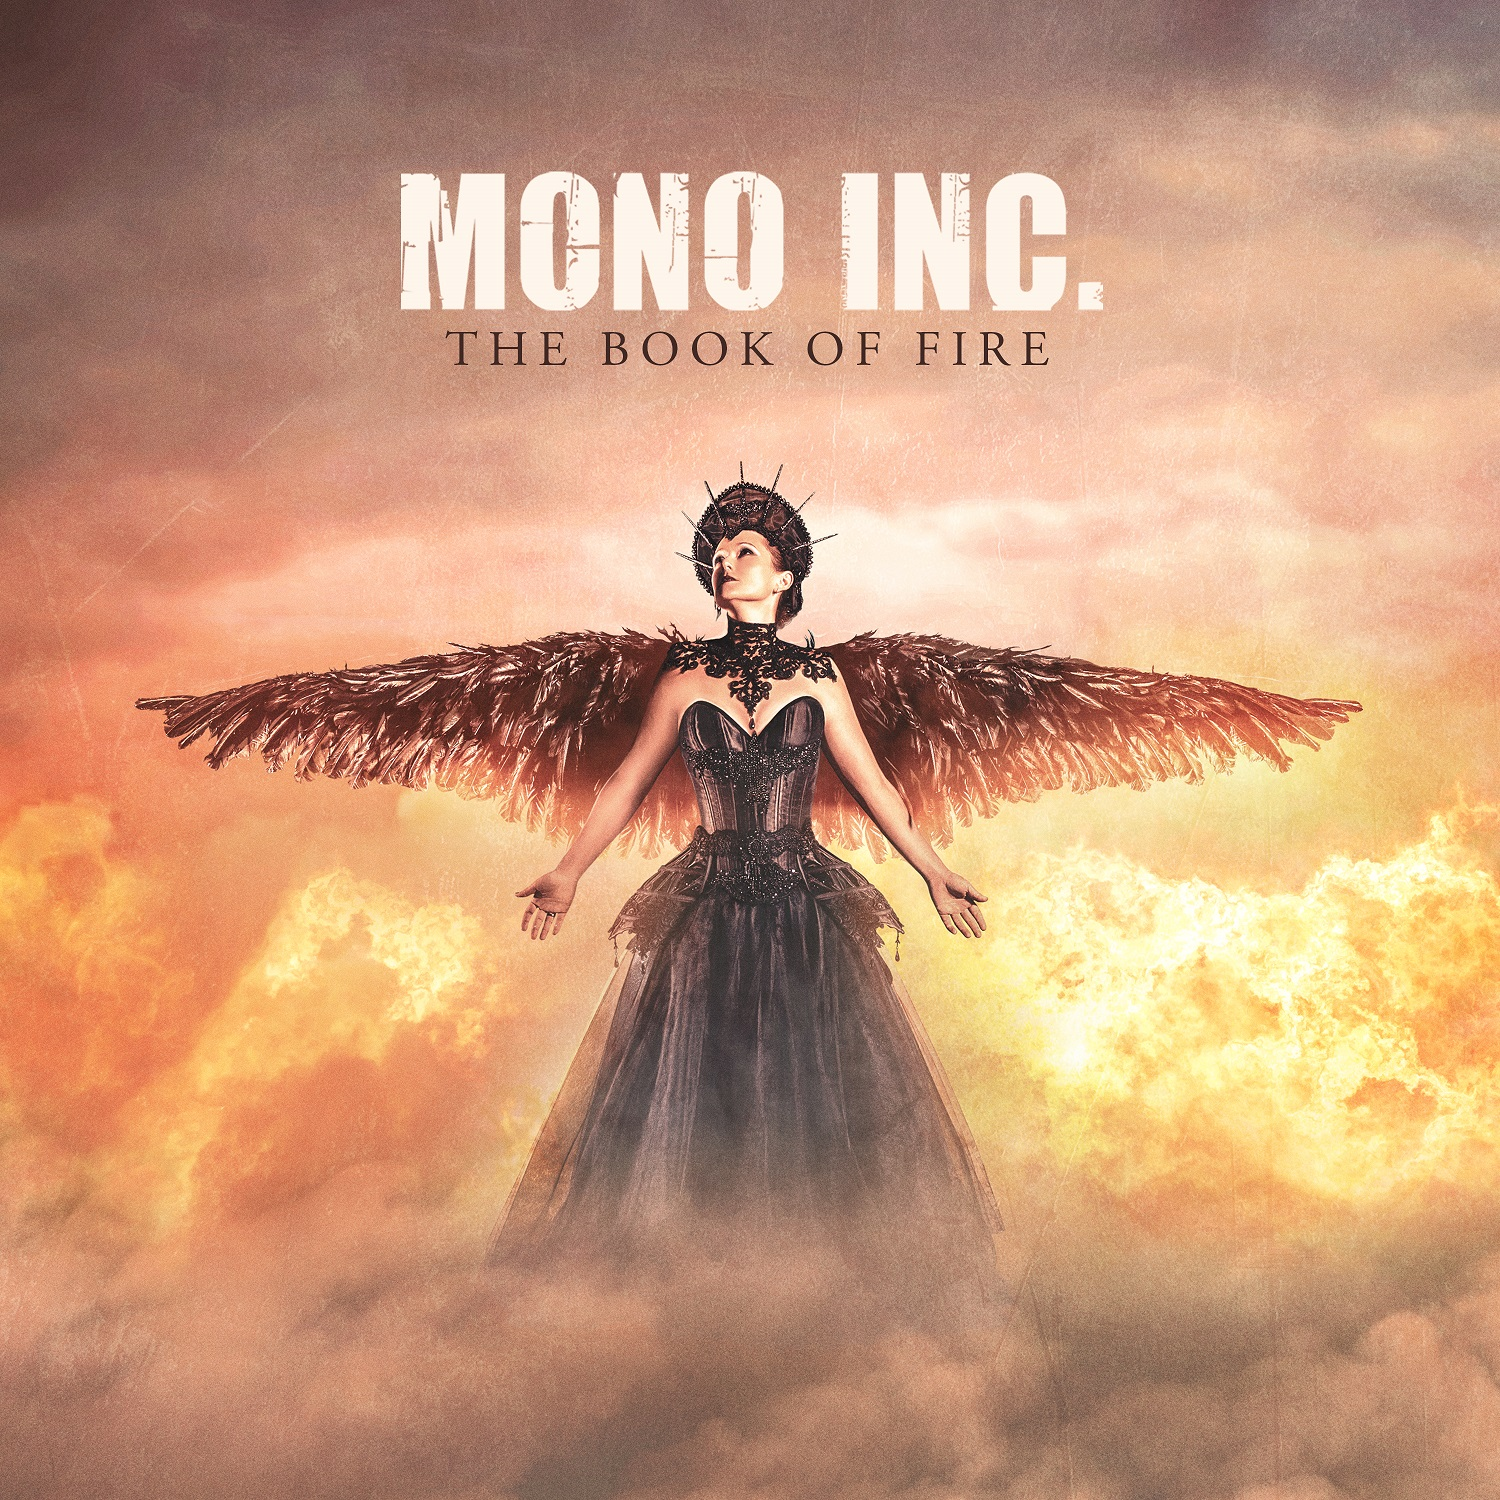 The Book of Fire (CD+DVD | Fanbox | Earbook | Vinyl)